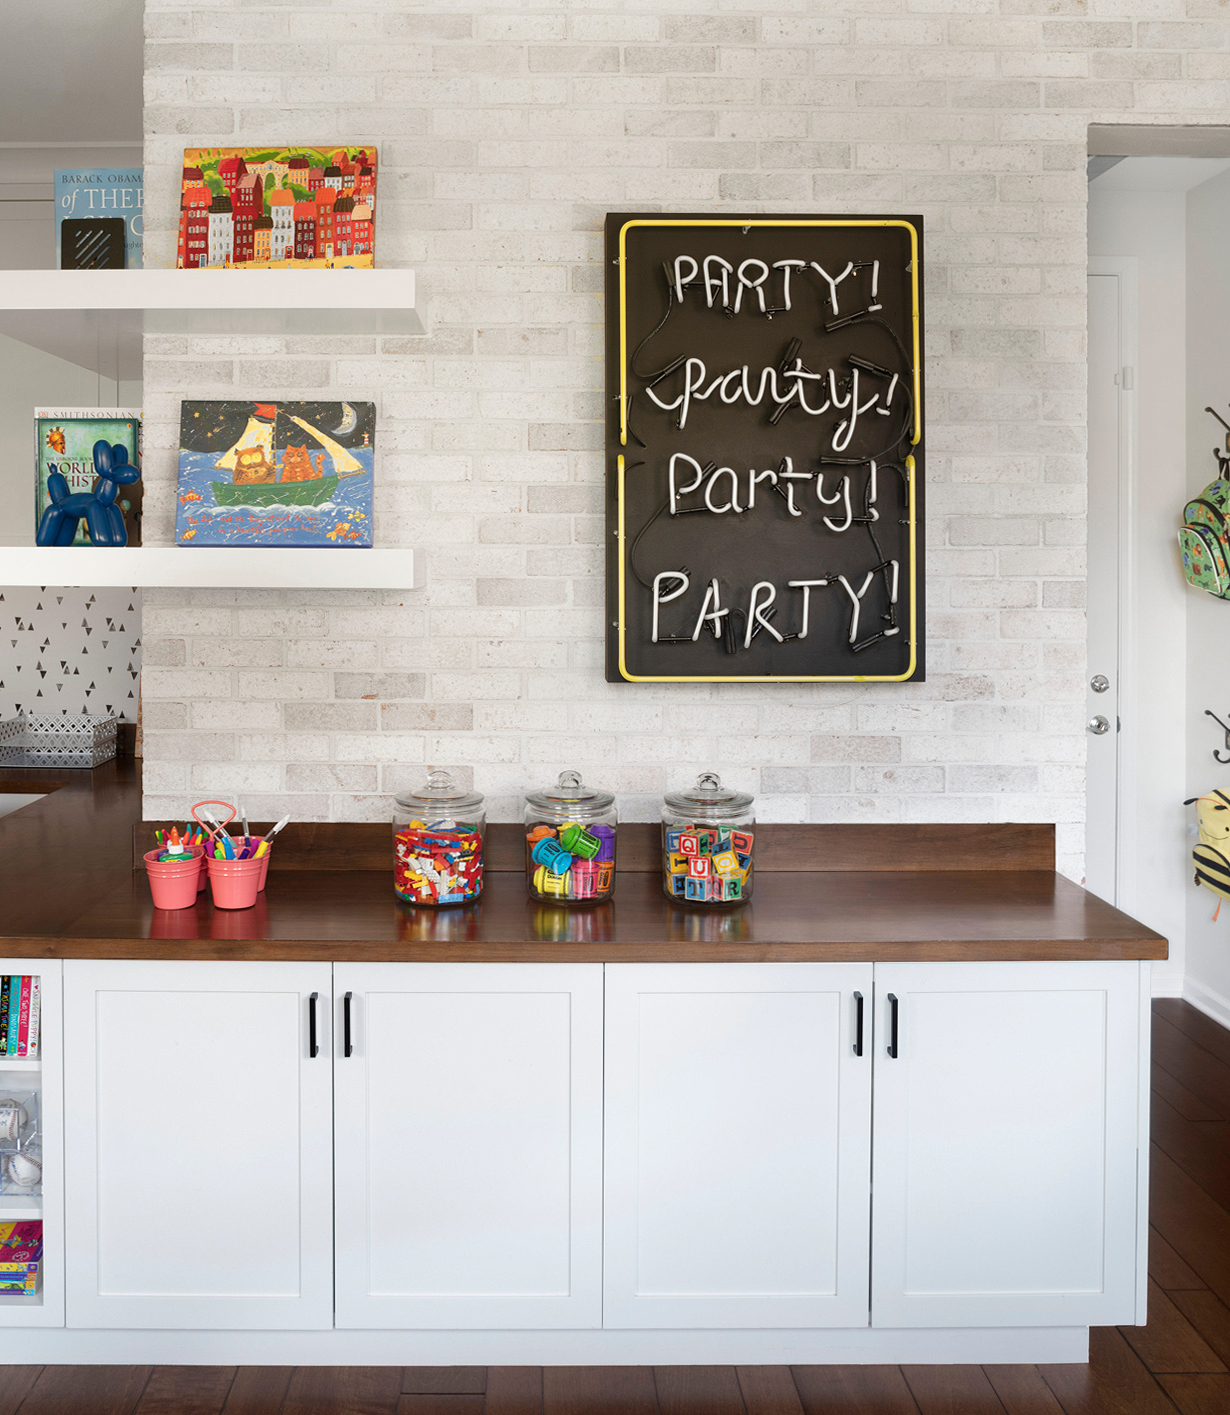 neon party sign playroom open shelving counter space jars